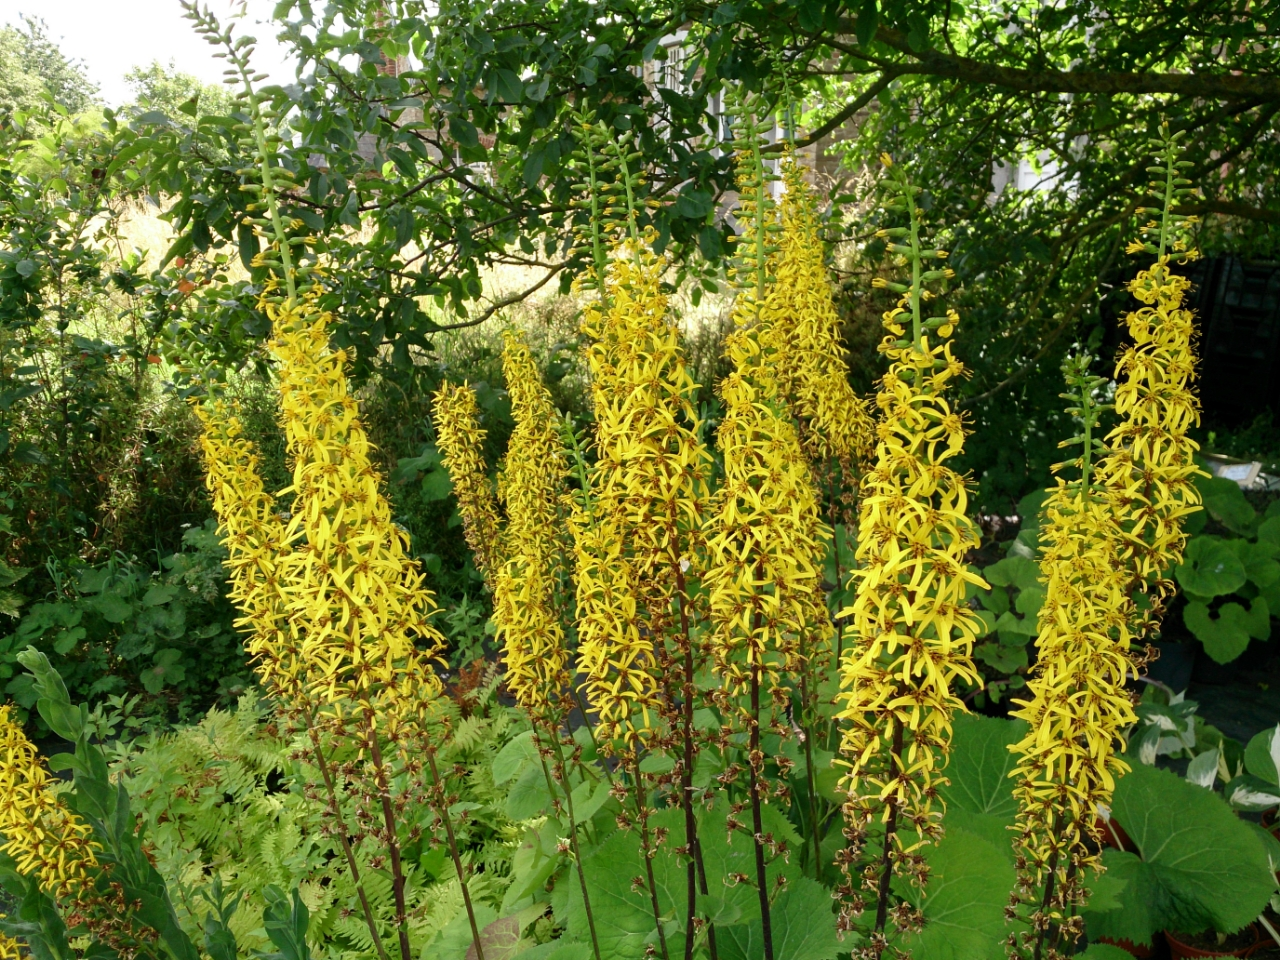 Ligularia_Japanese_Candles